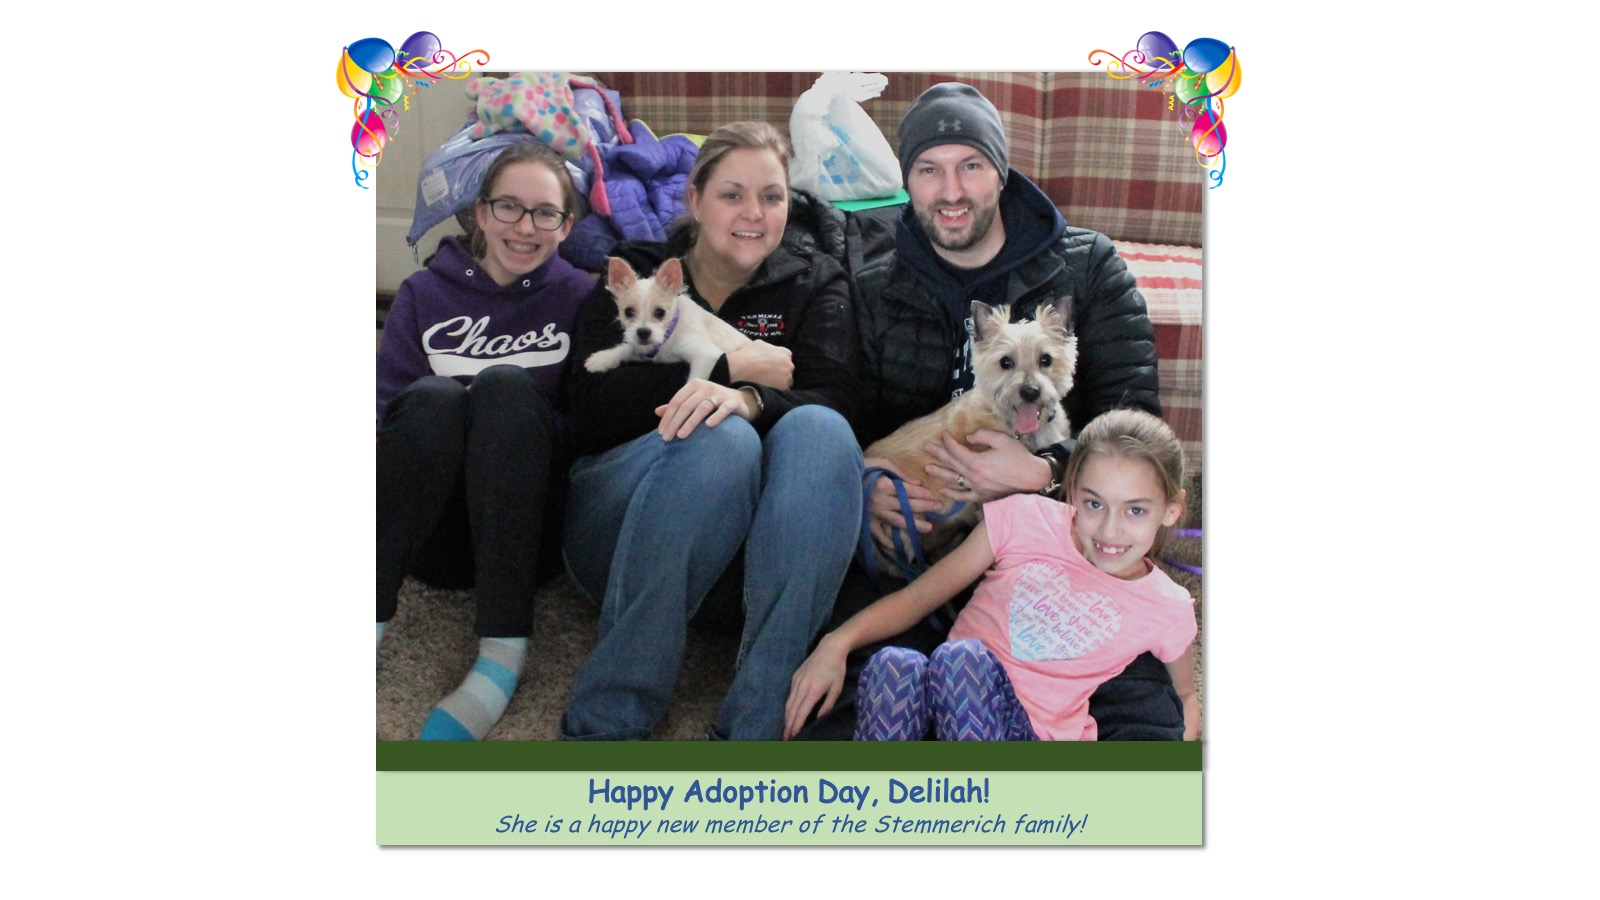 Delilah_Adoption_Photo_2018.jpg